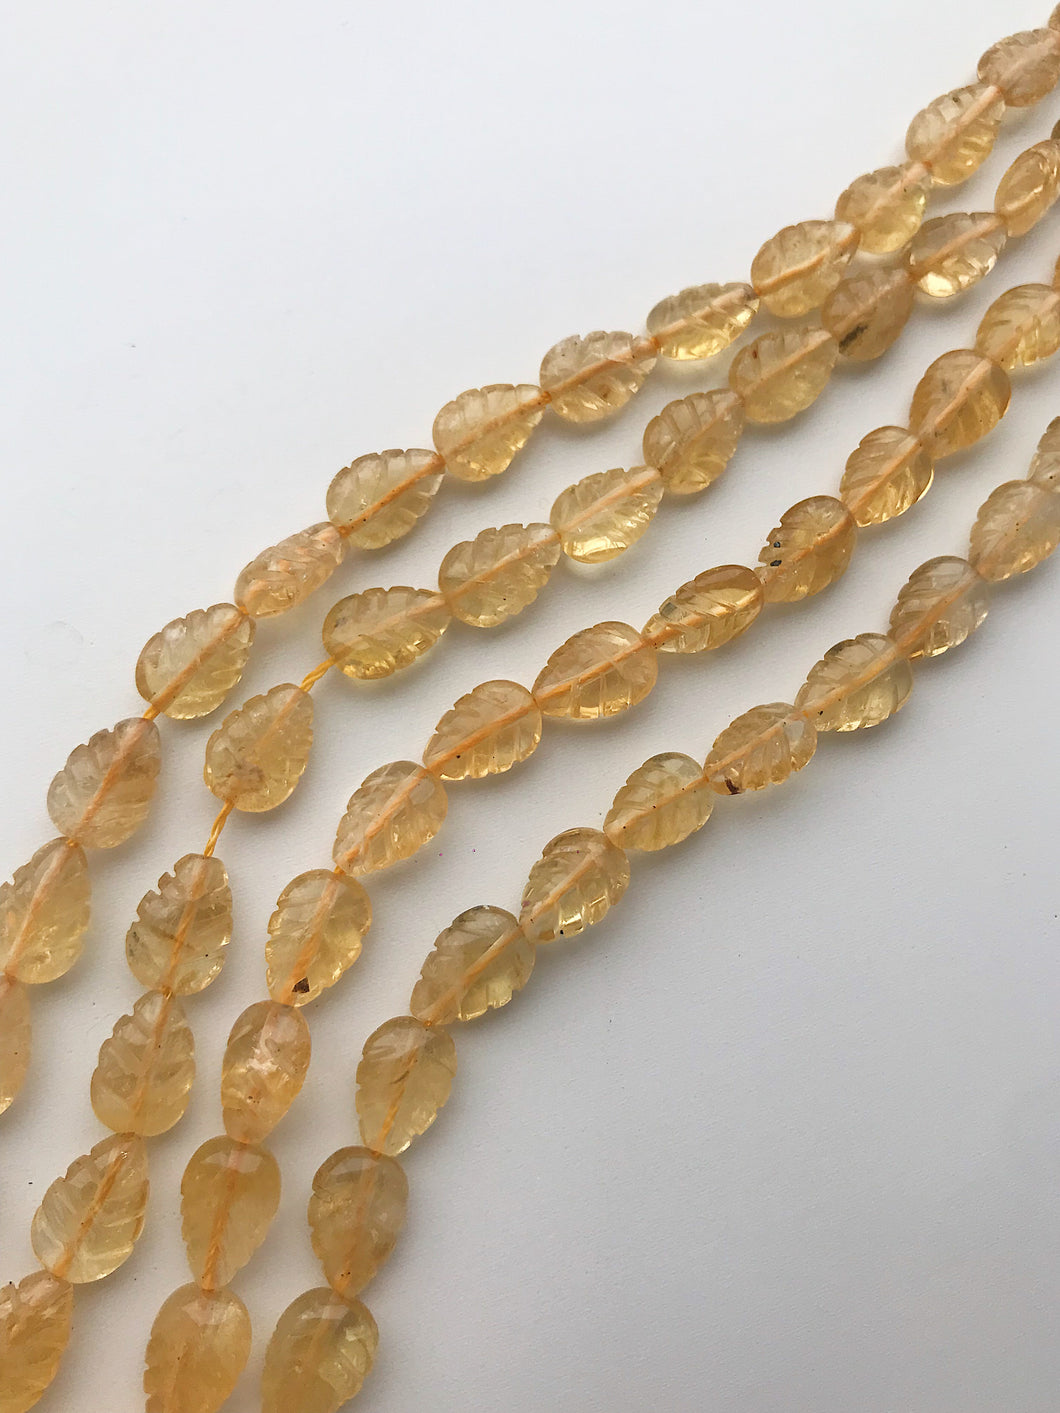 Citrine Carved Leaves 5-6mmx1.5-2mm Drilled Lengthwise